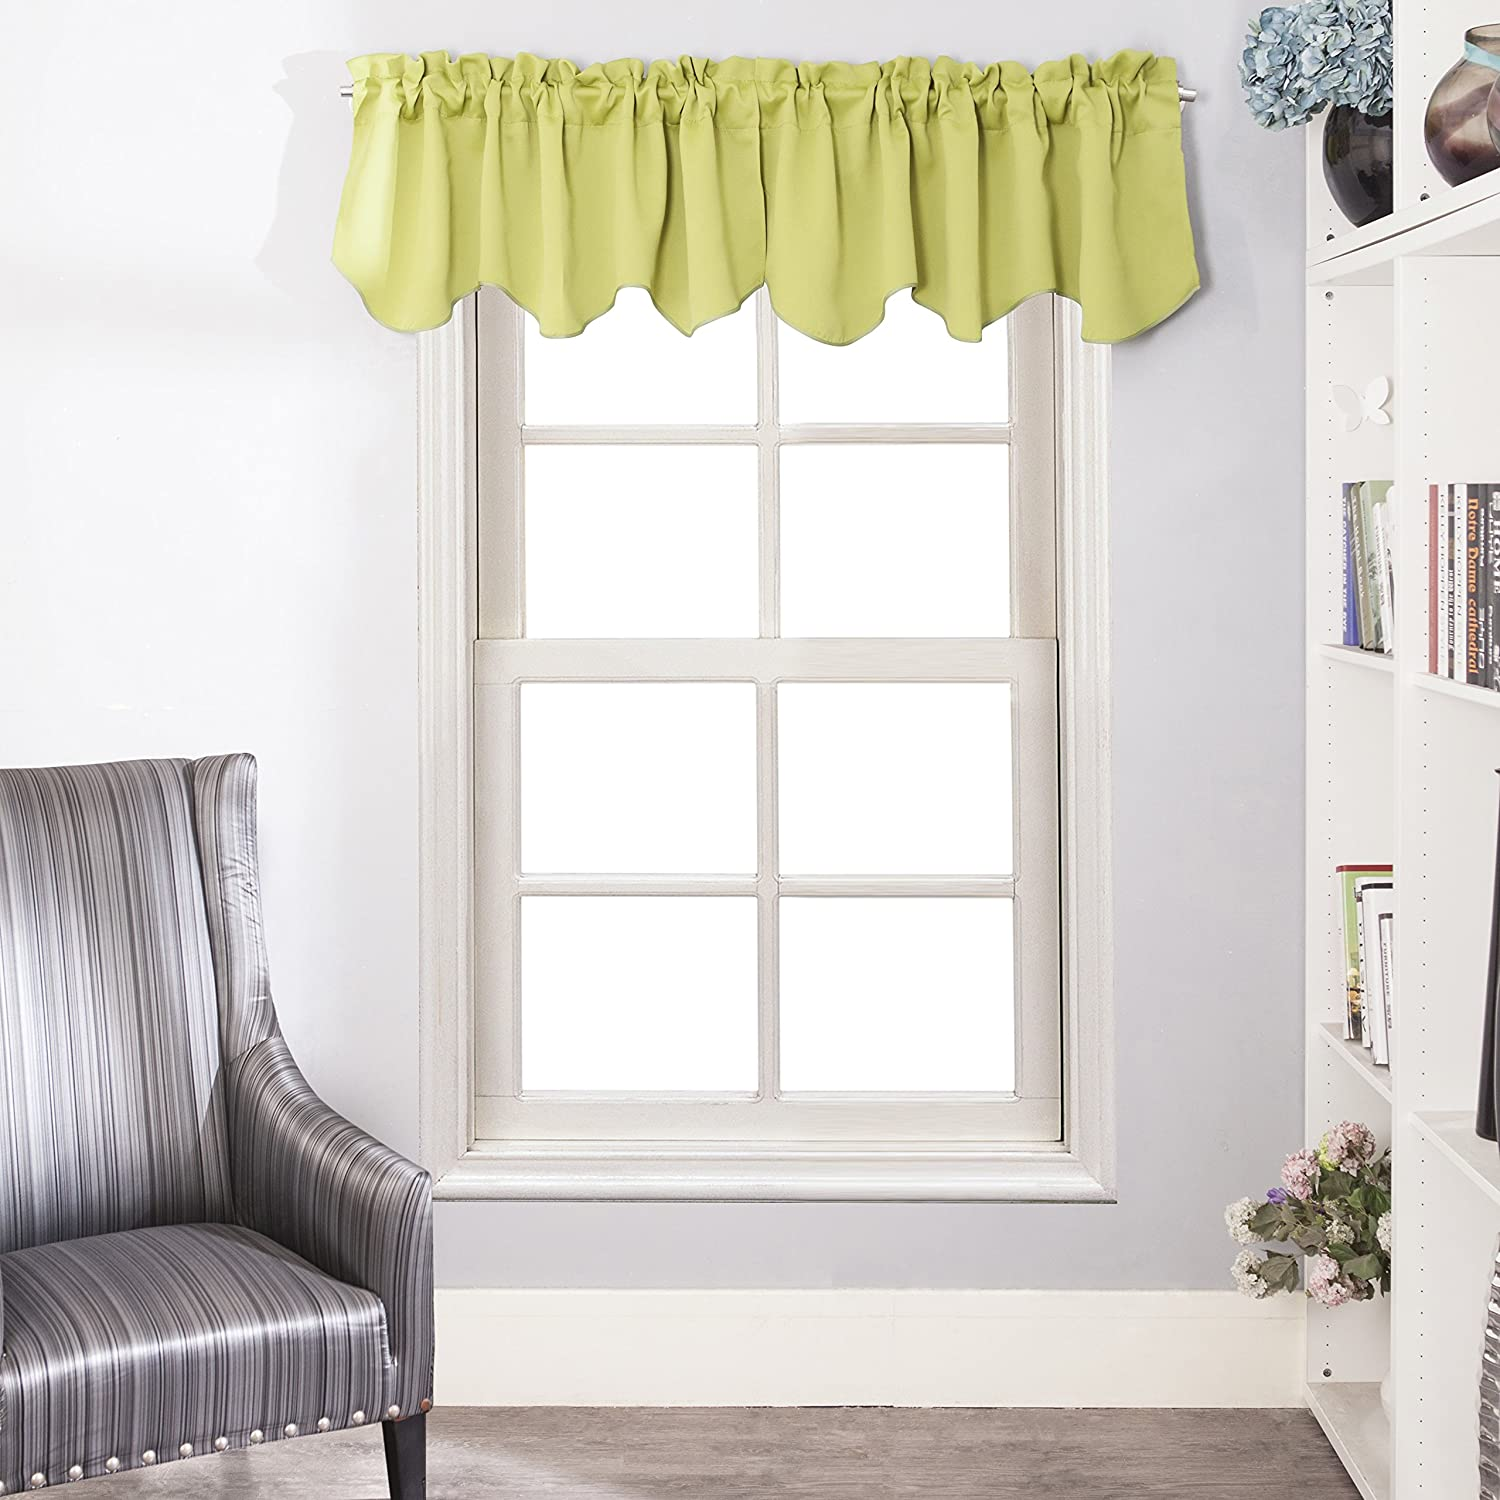 Rod Pocket Scalloped Valances For Kitchen